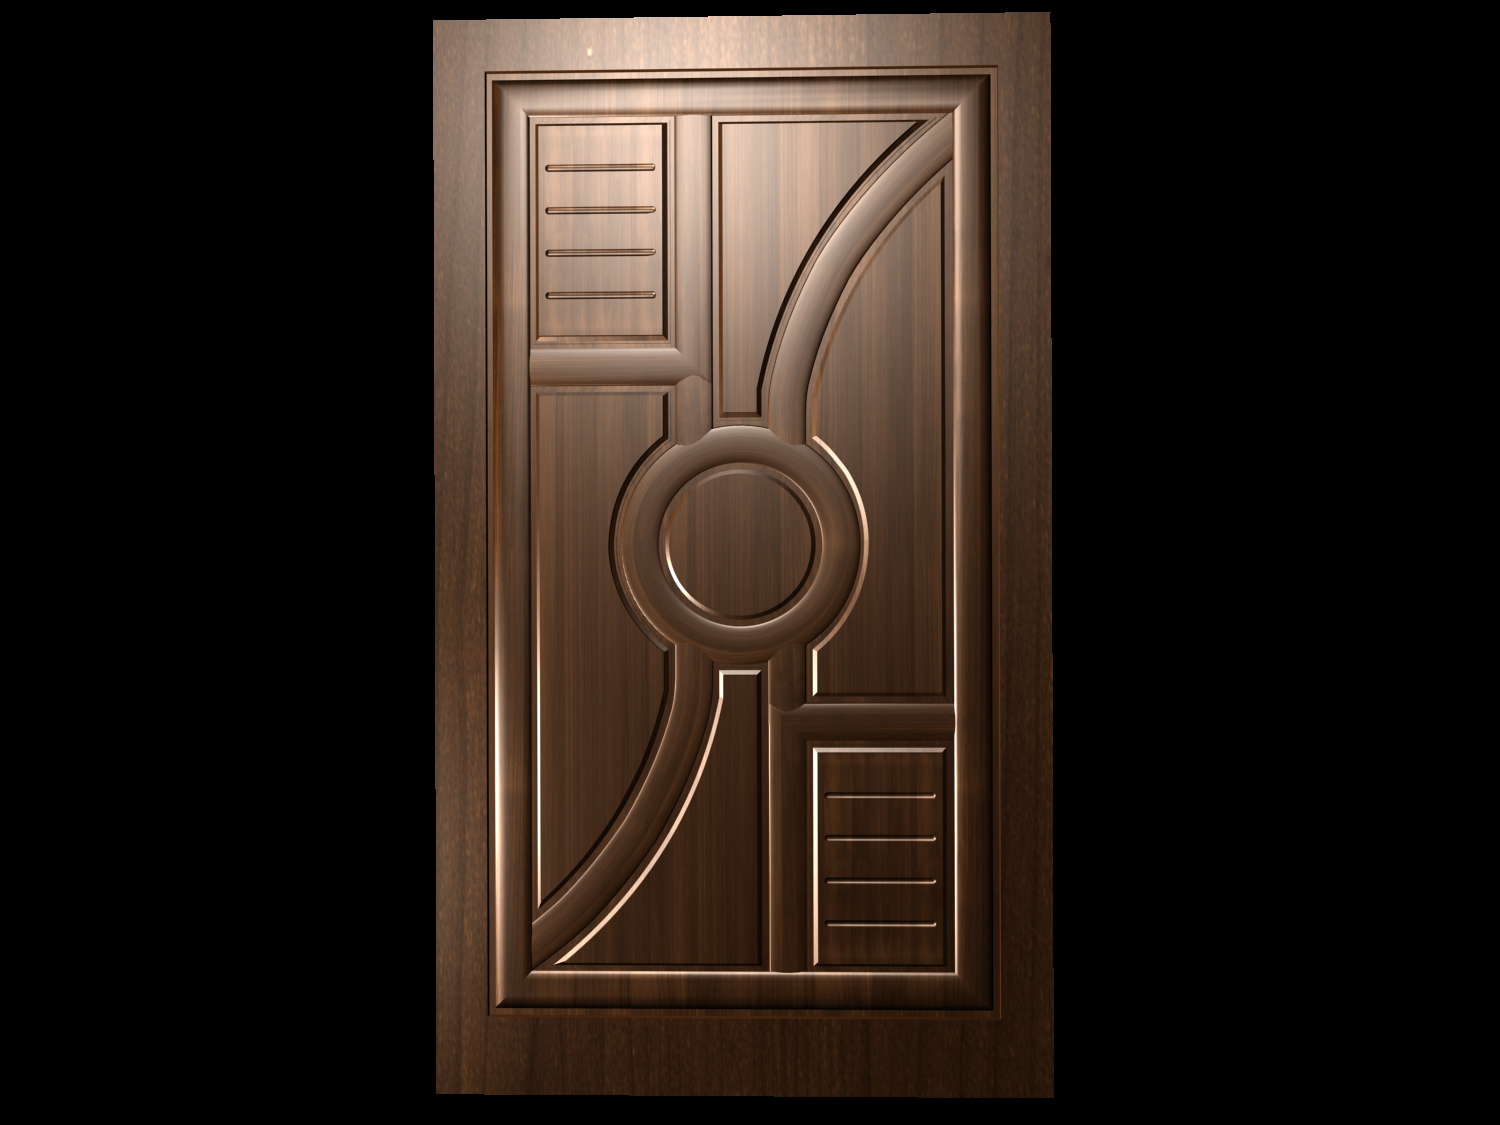 I Want Idea About Main Door Which Is Teak Wood But Simple